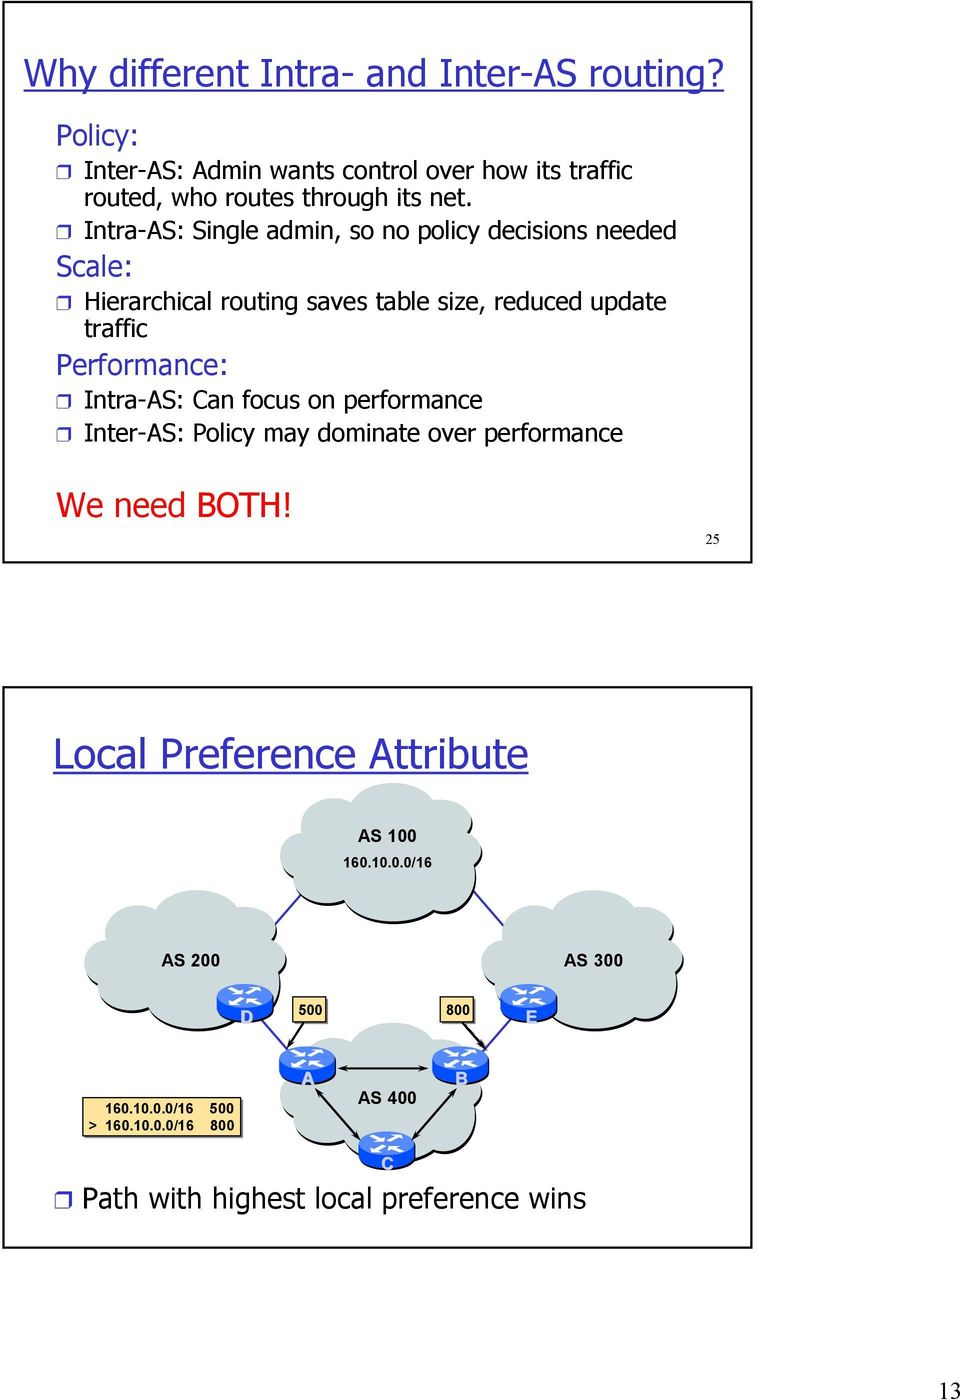 Intra-AS: Single admin, so no policy decisions needed Scale: Hierarchical routing saves table size, reduced update traffic